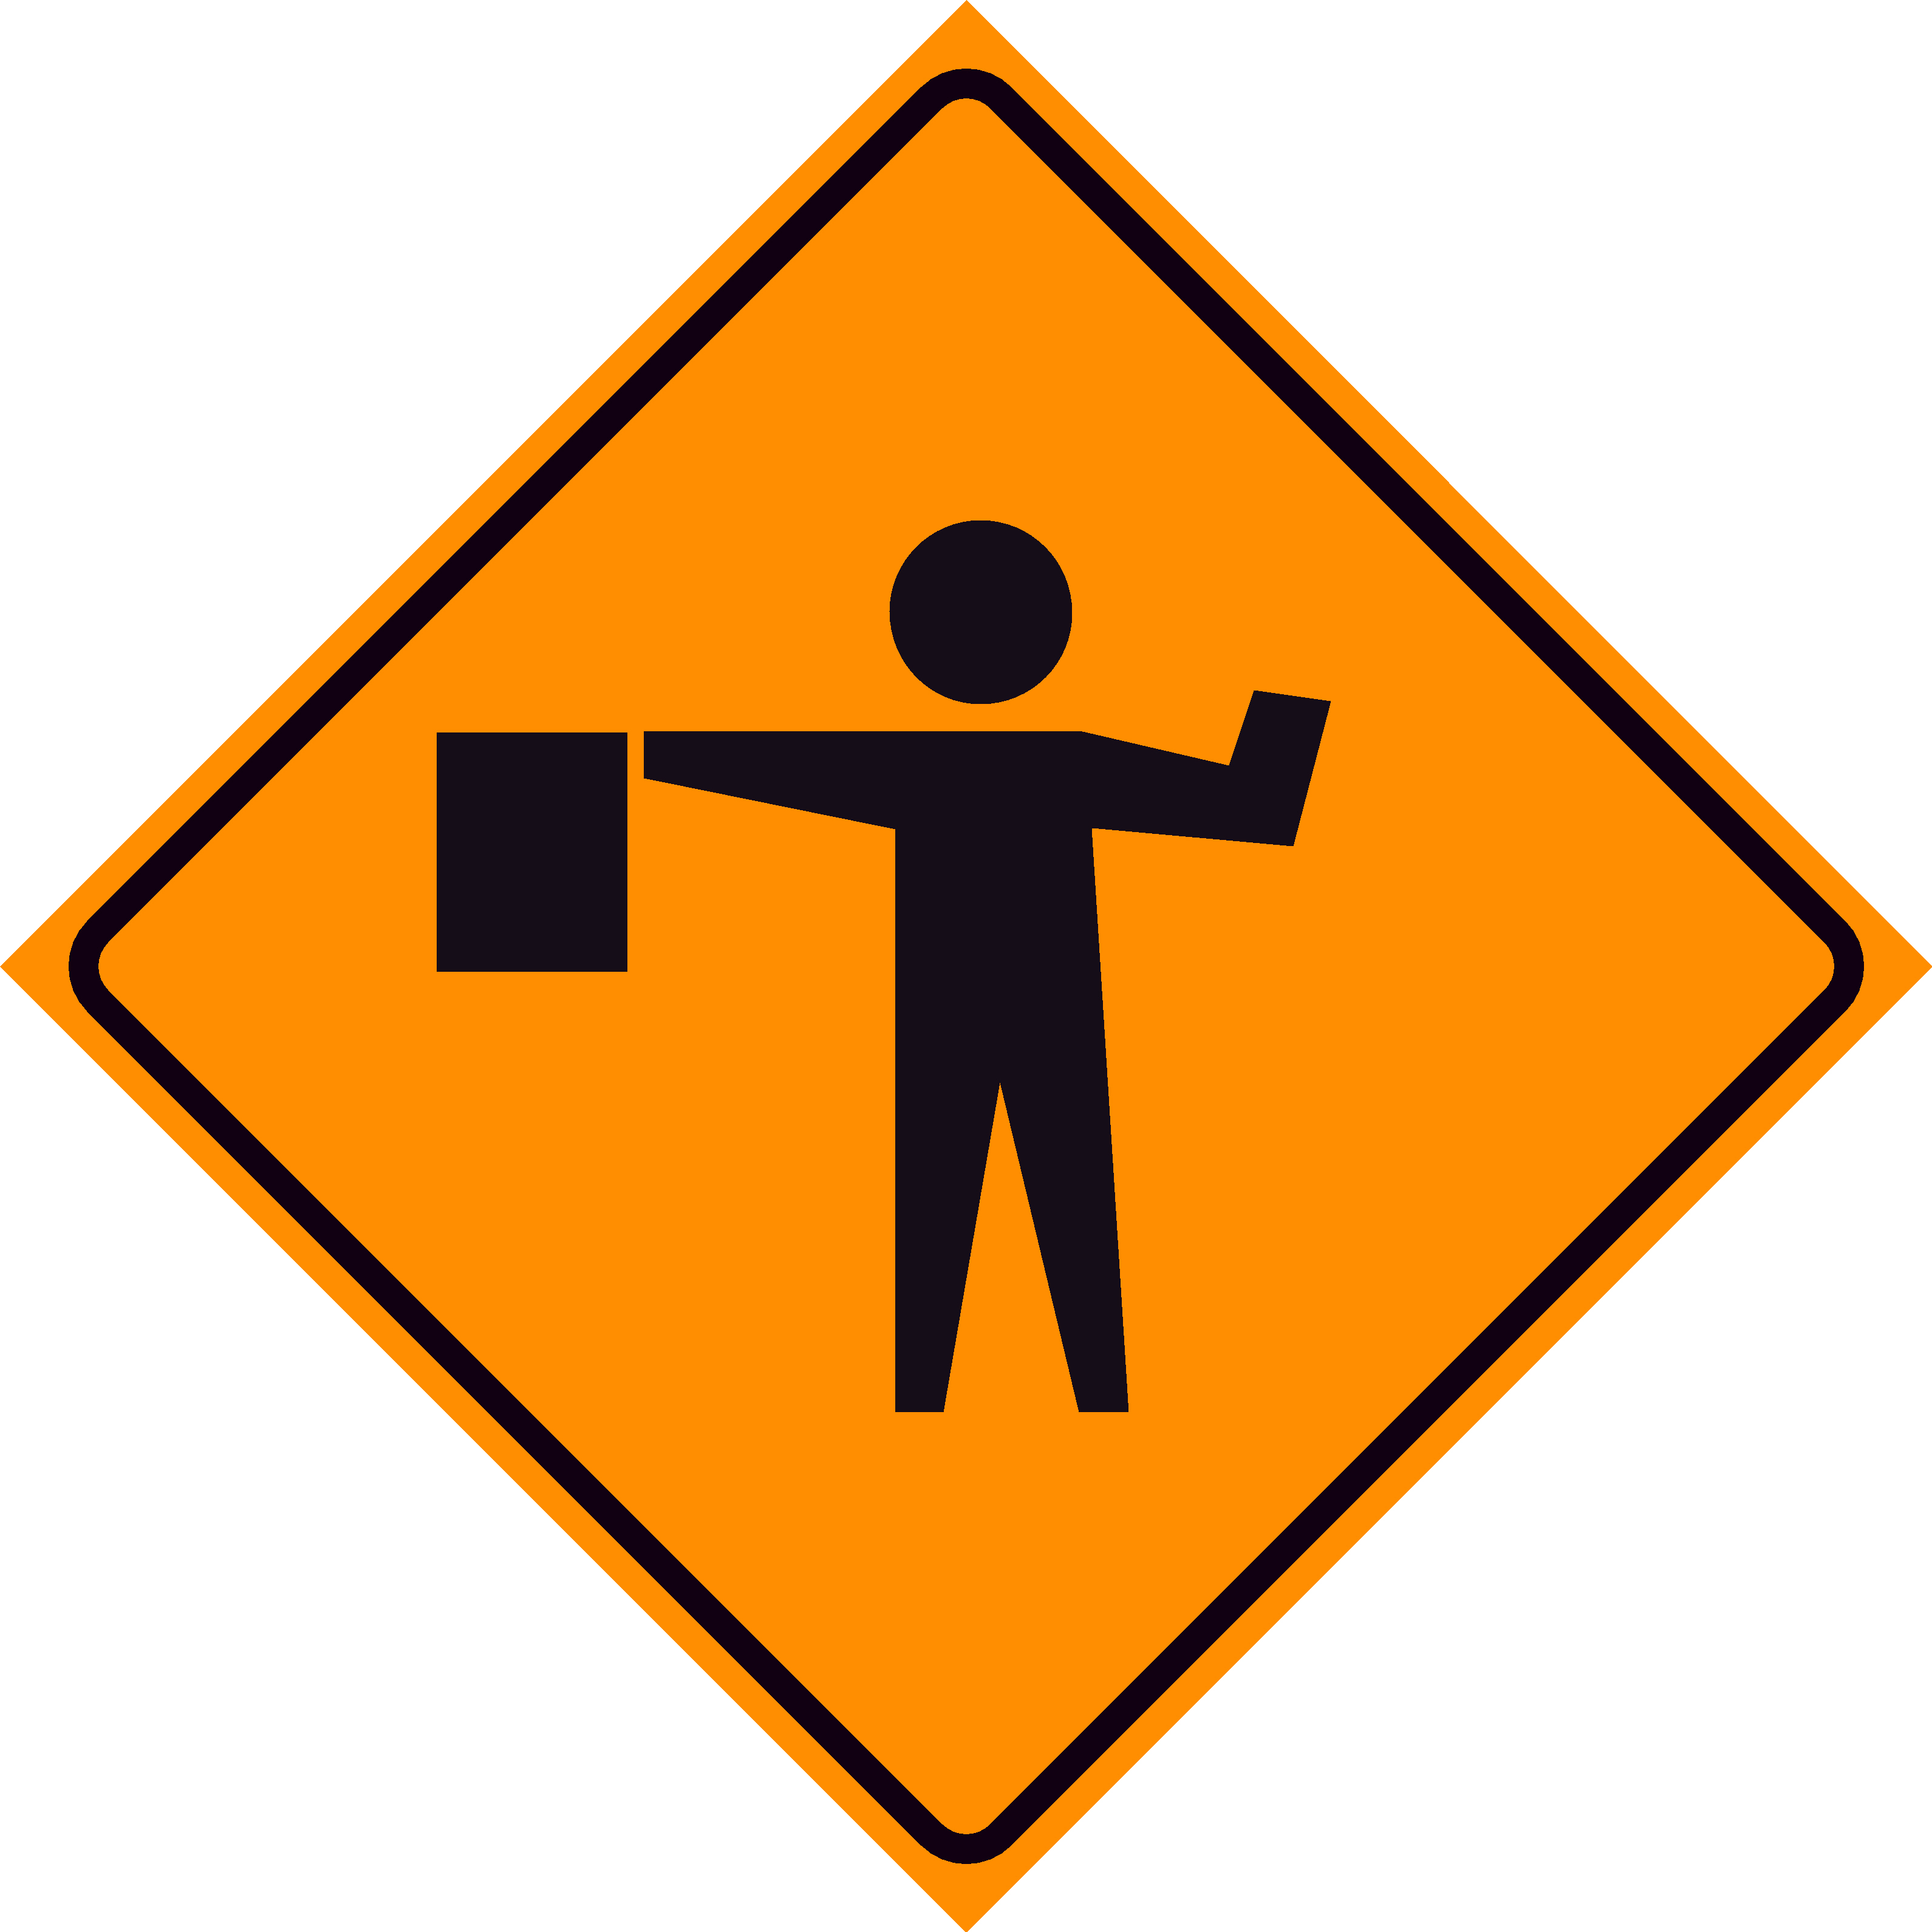 Men At Work Road Sign   Clipart Best